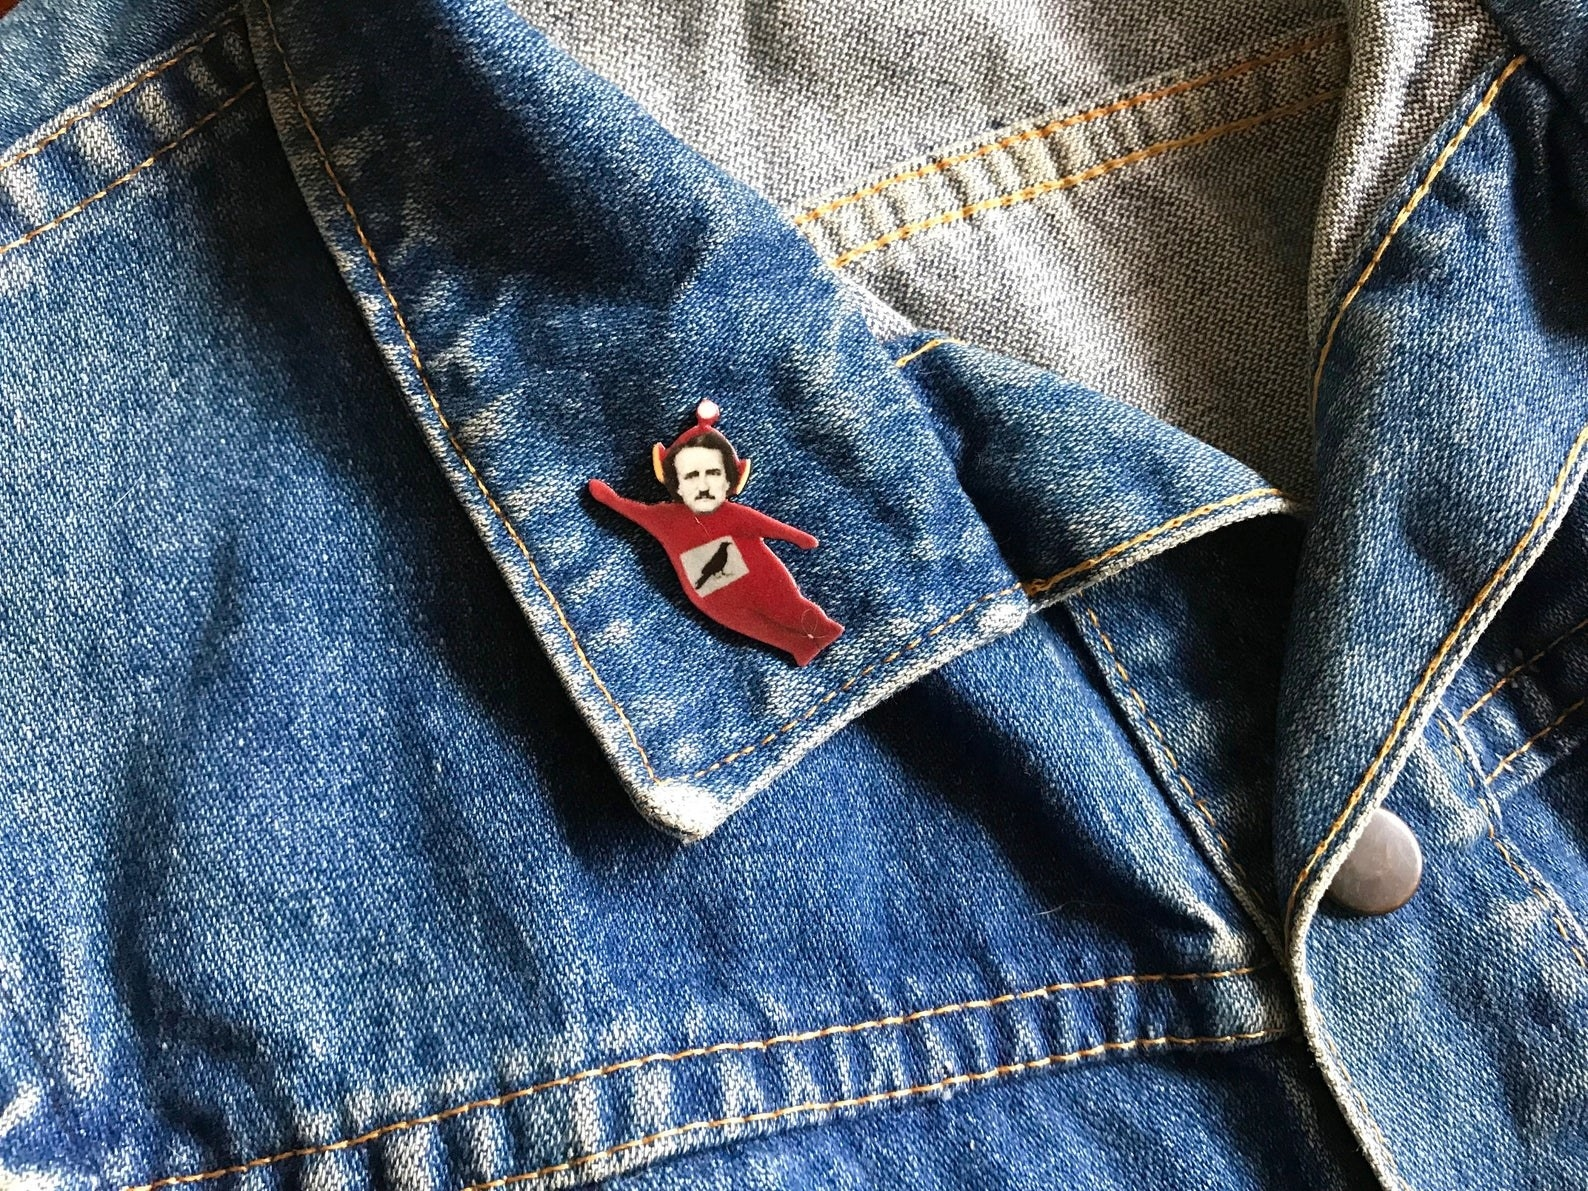 the red enamel pin